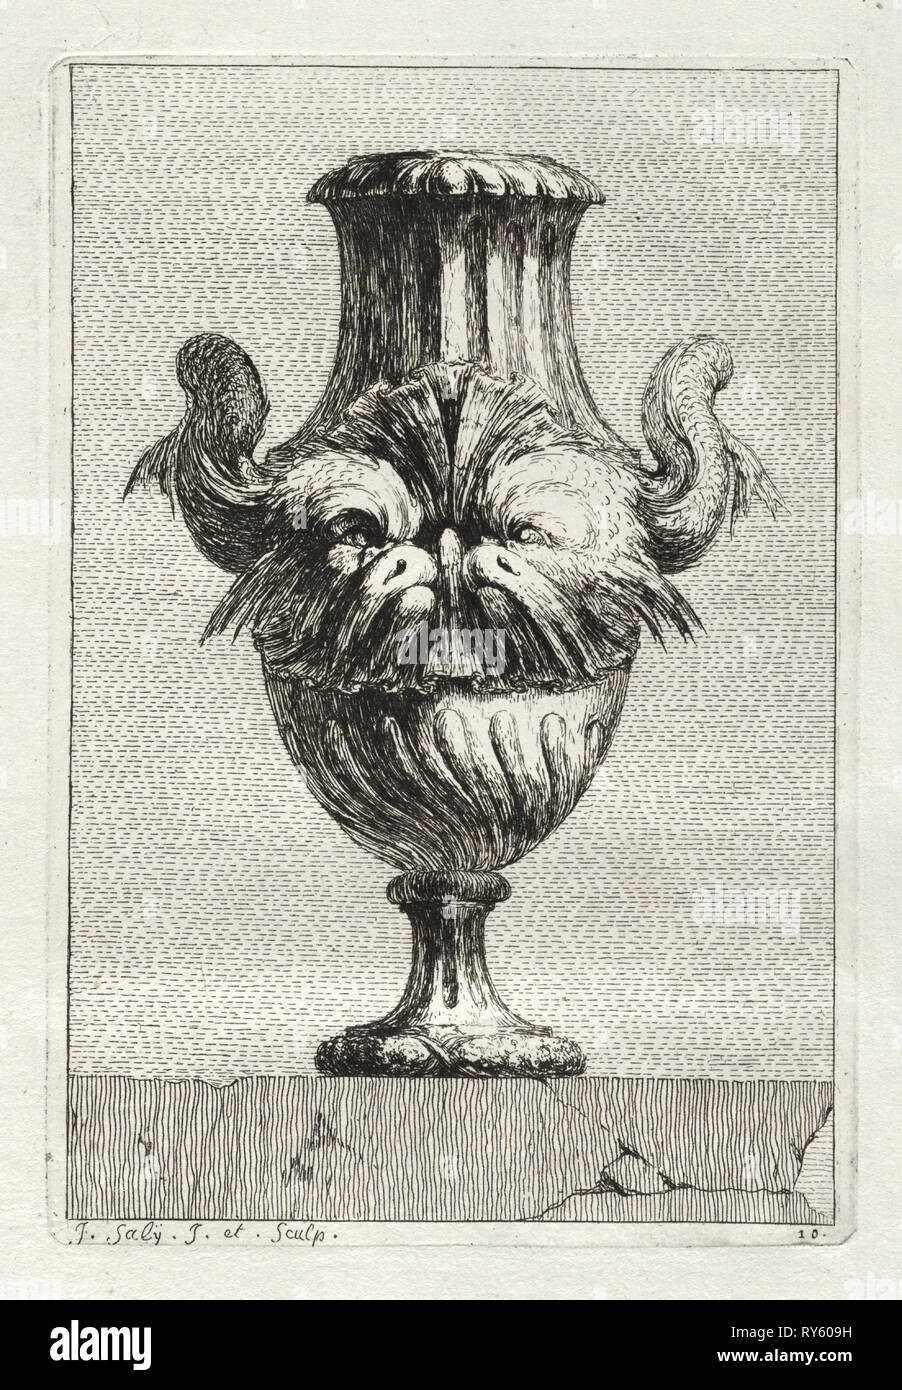 Suite of Vases:  Plate 10, 1746. Jacques François Saly (French, 1717-1776). Etching Stock Photo